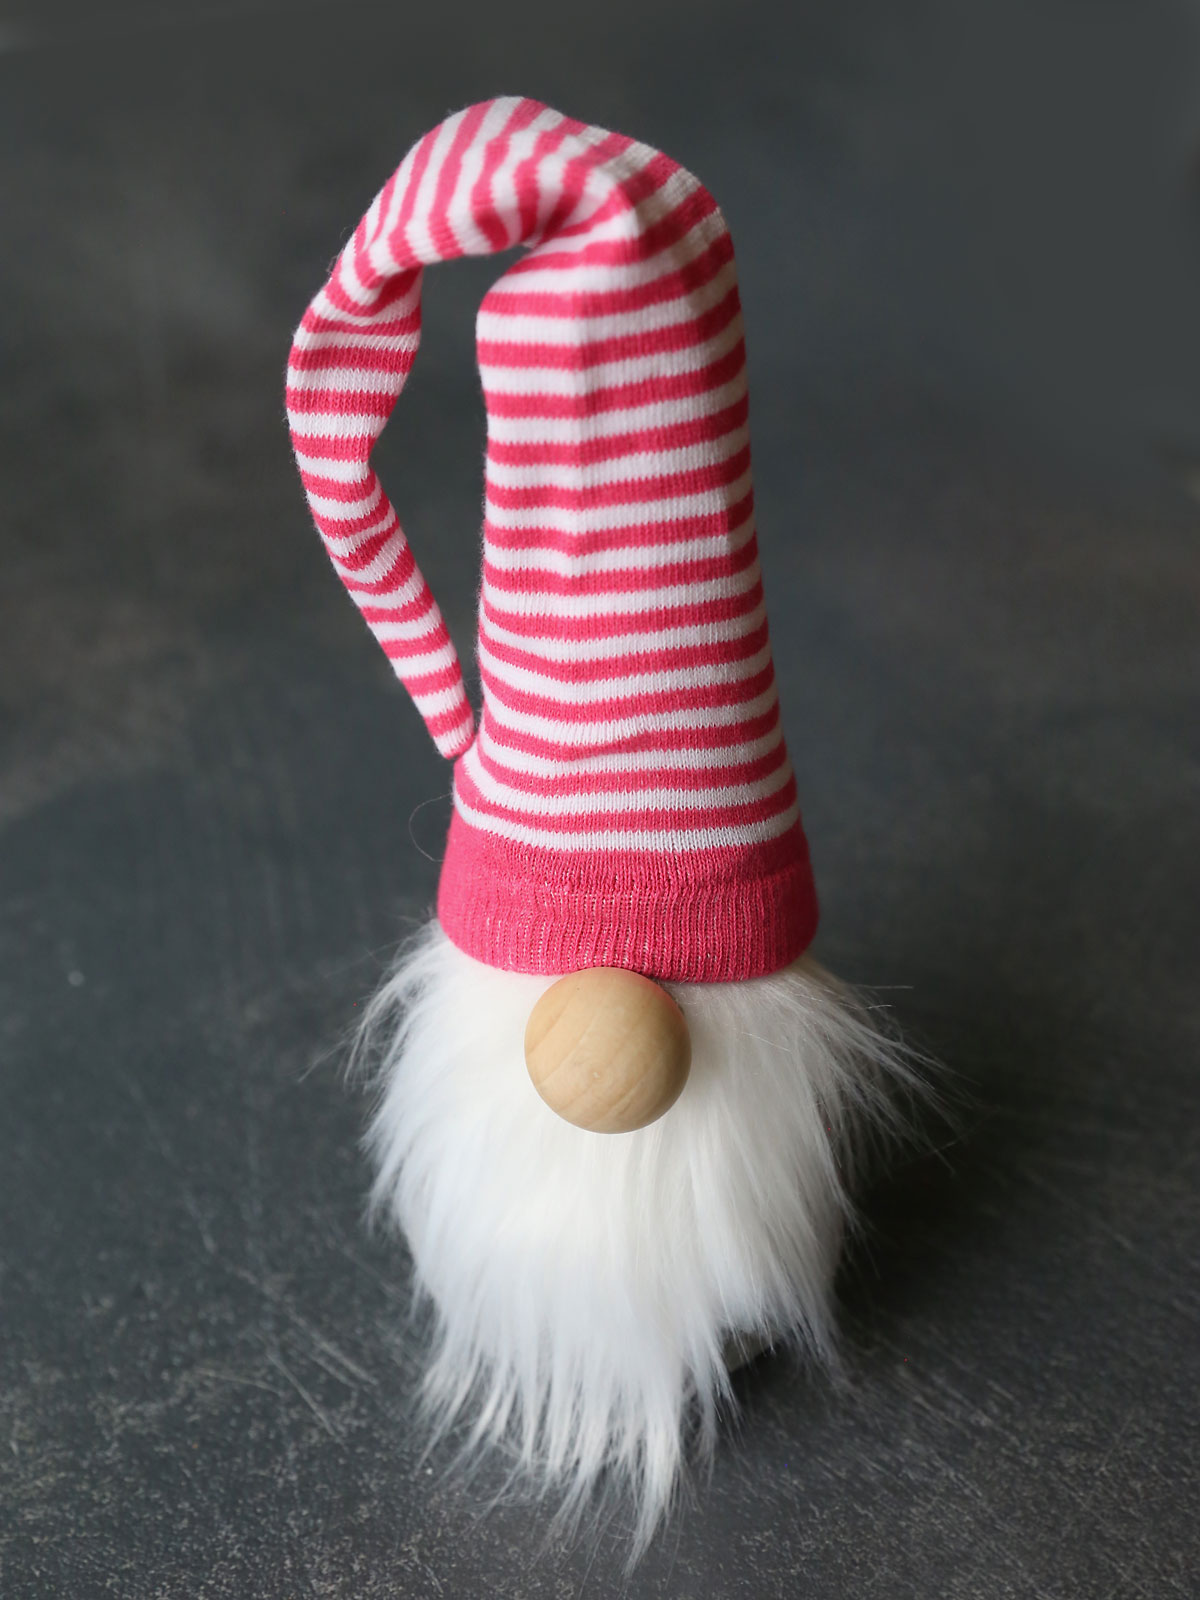 How to make a sock gnome: place hat on top